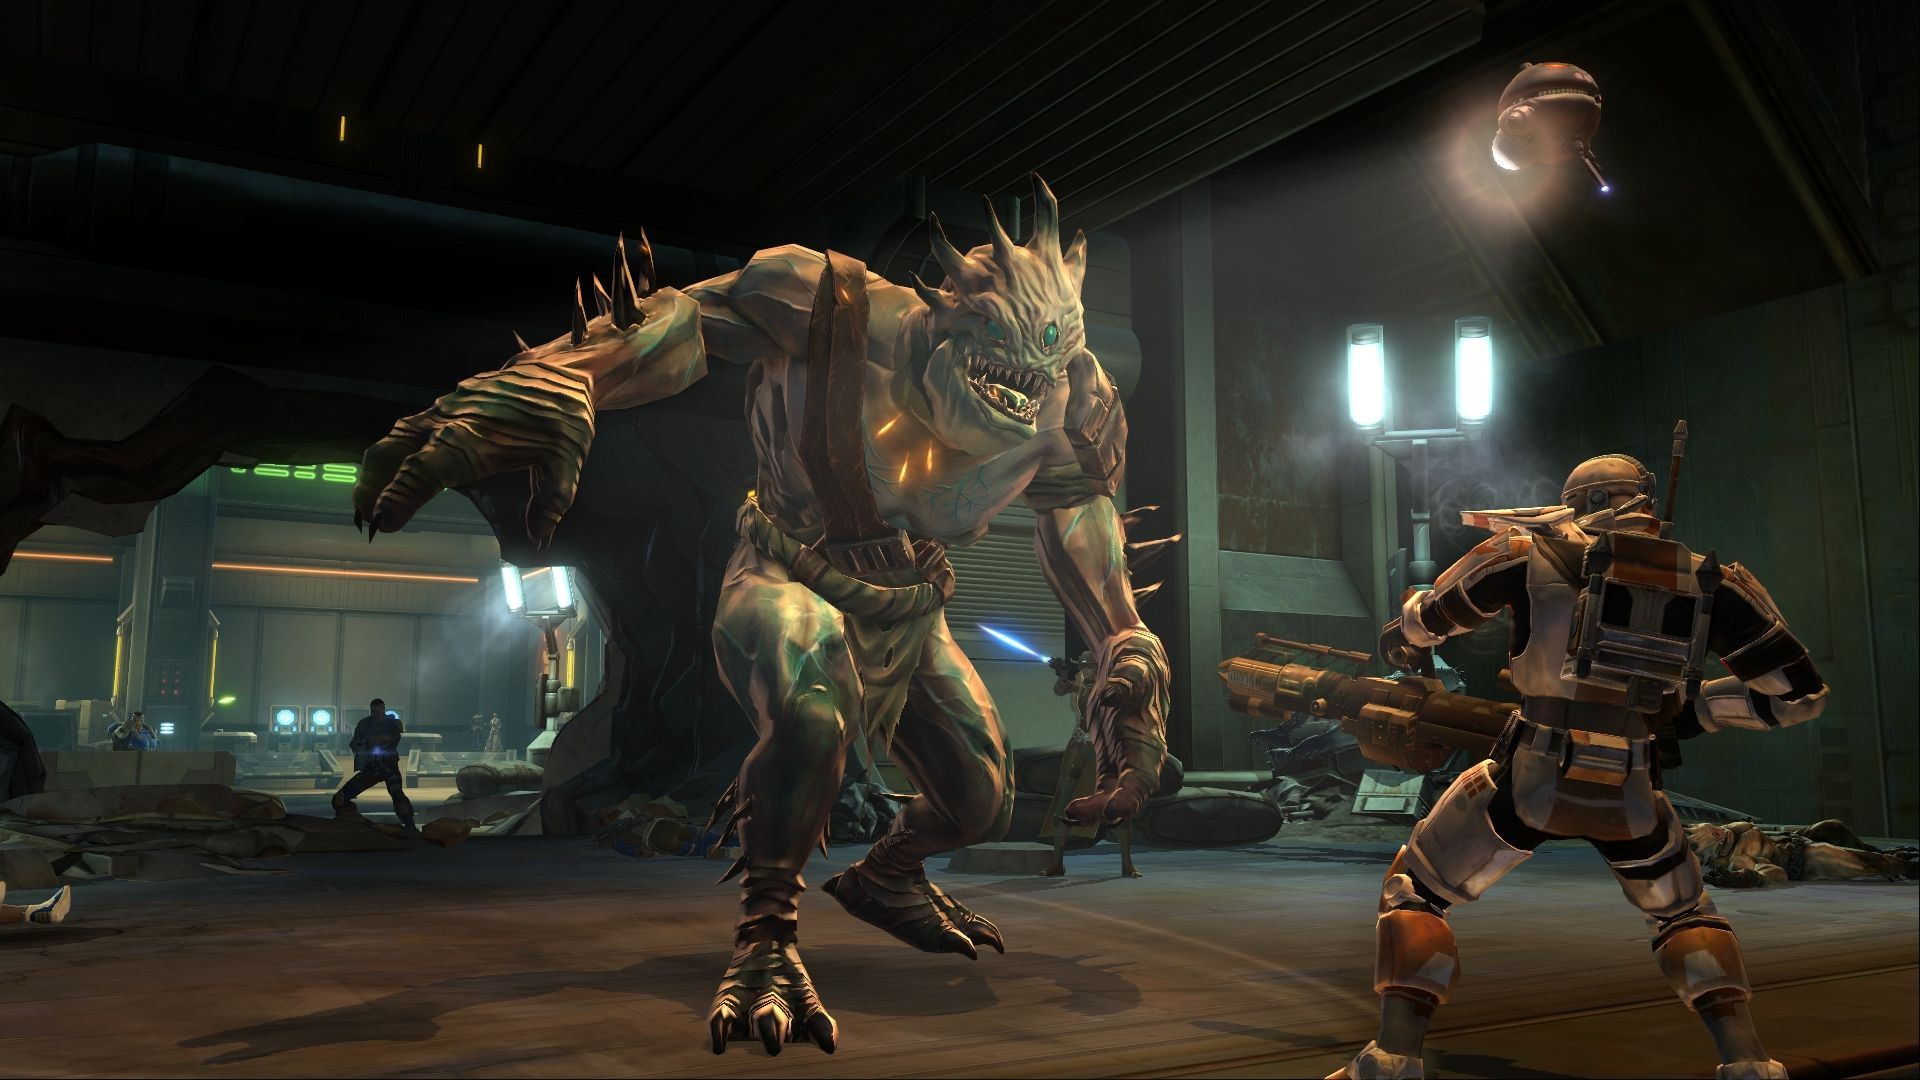 Old republic gaming phanatic free image hosting at imageshack fandeluxe Image collections